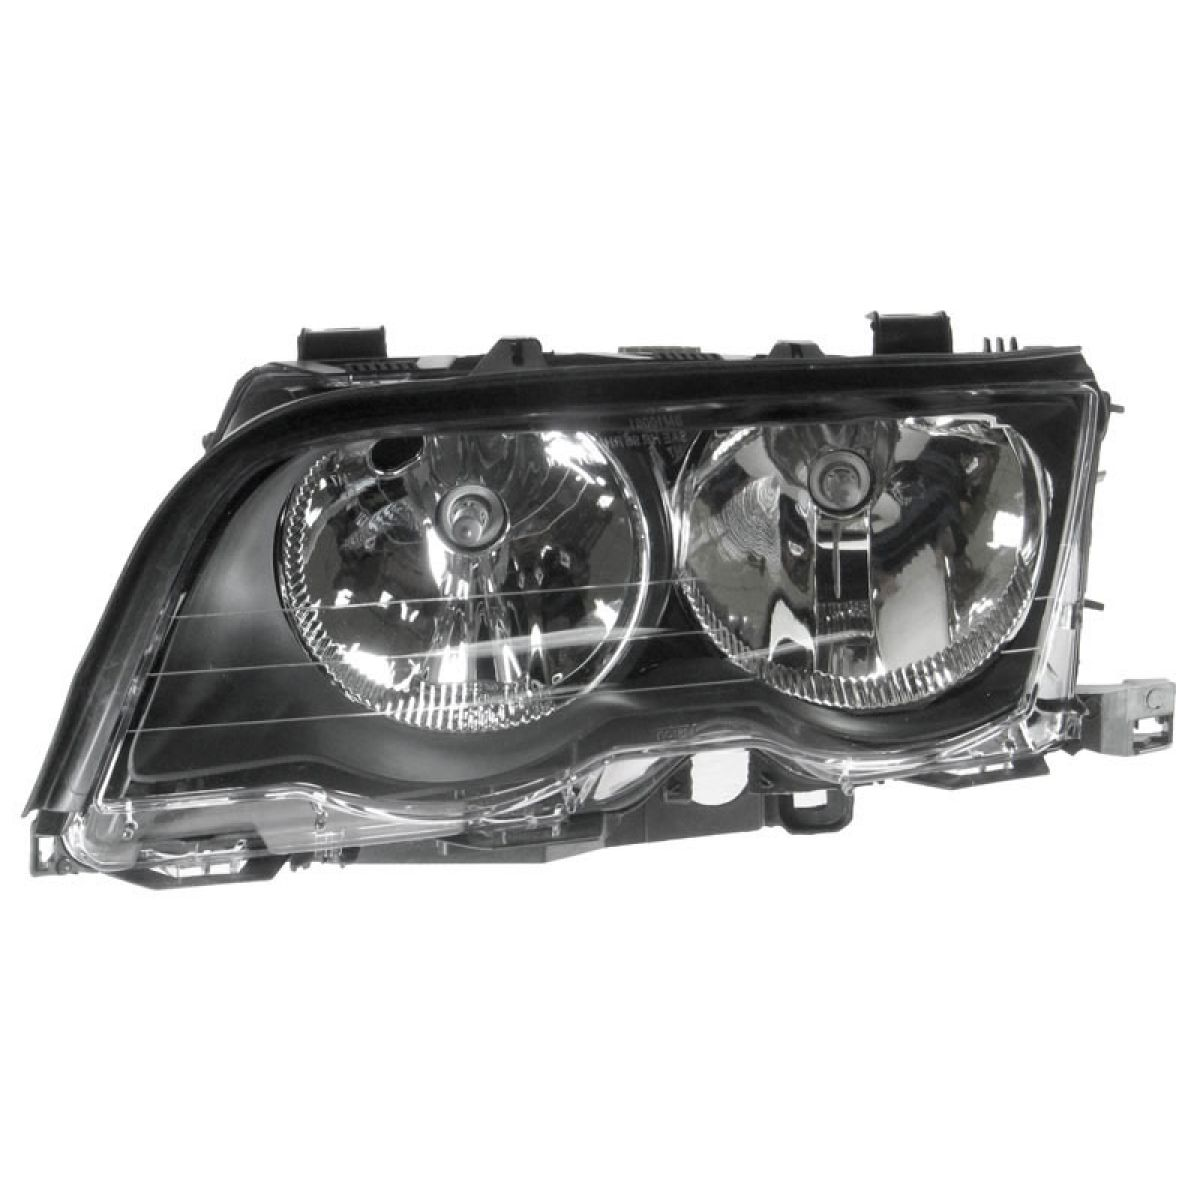 00 323i headlight